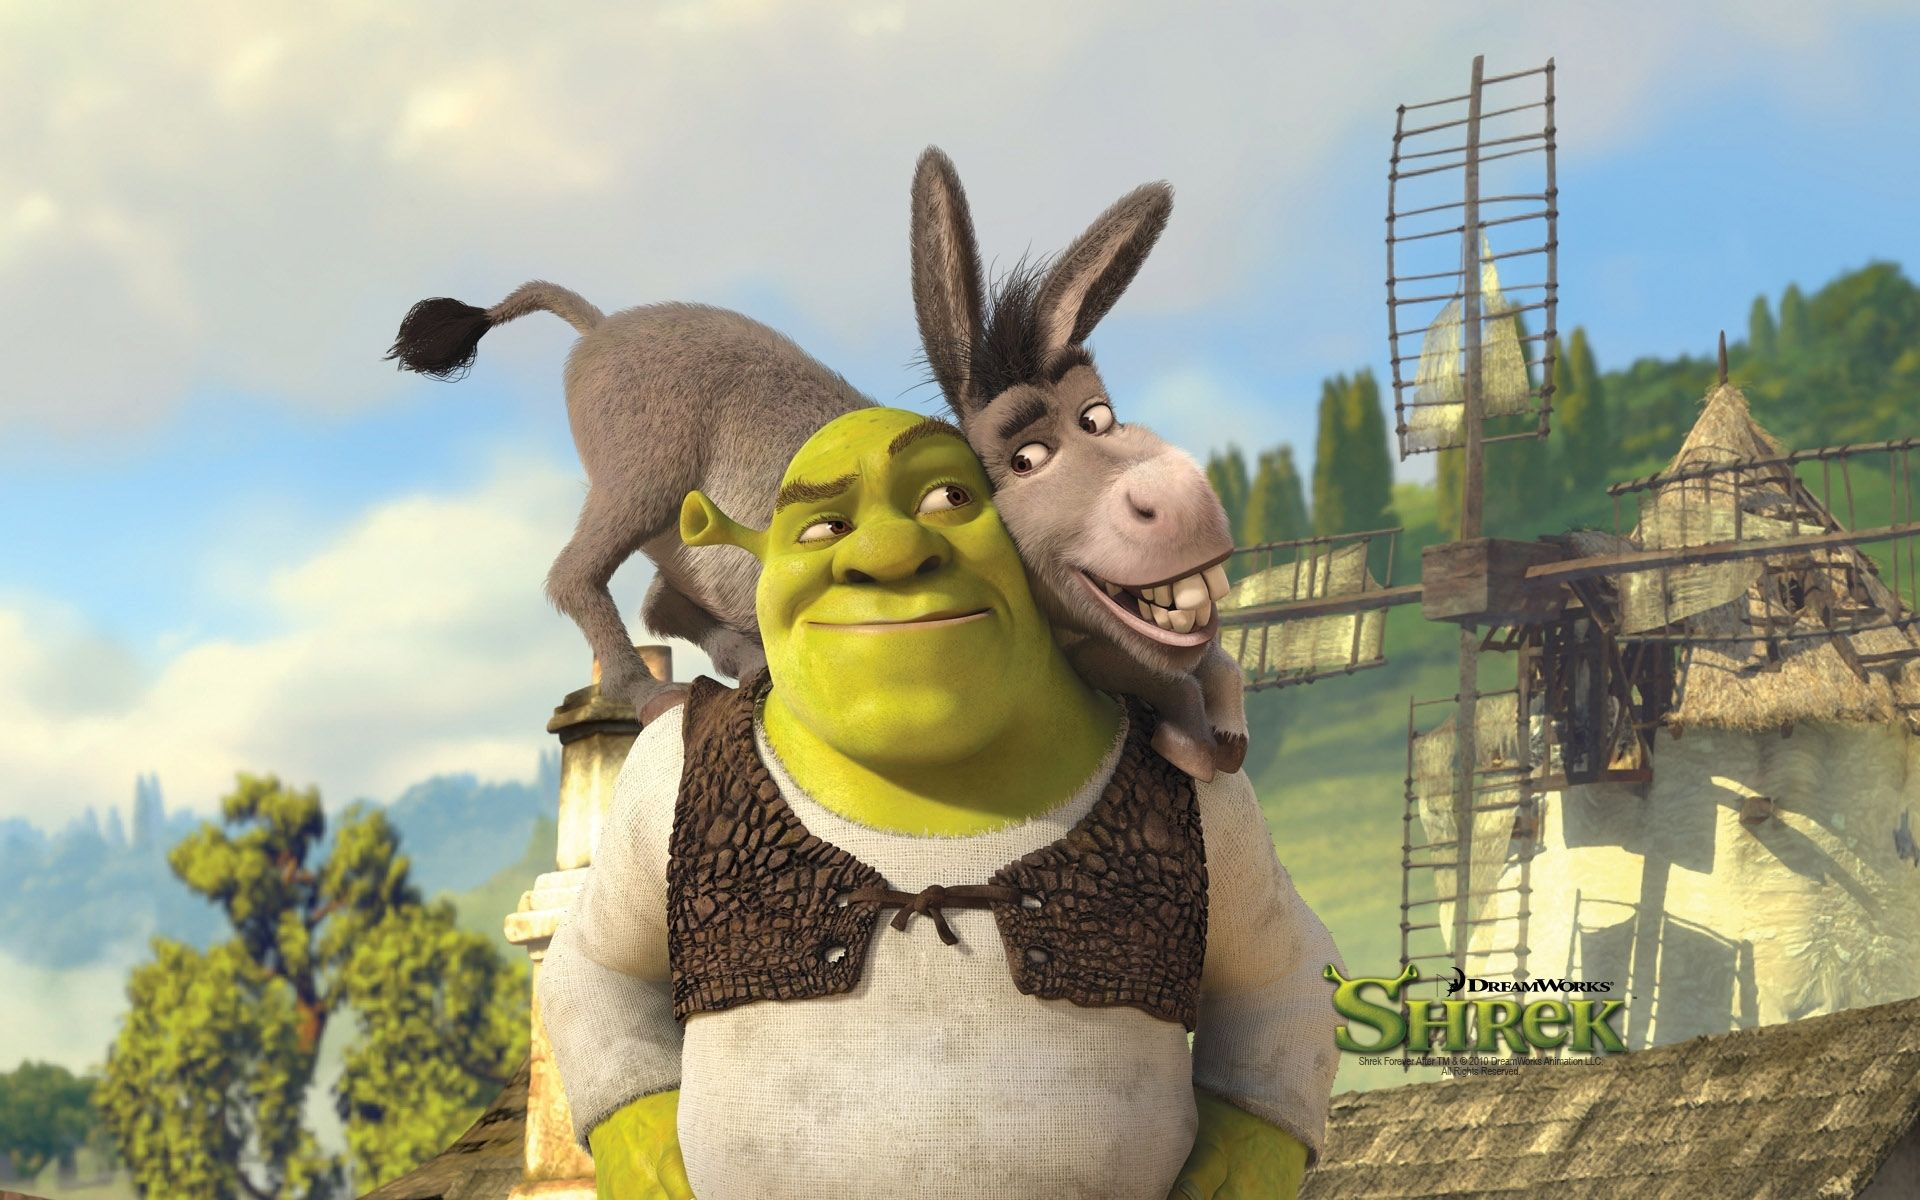 Shrek 5 Pre-Production is almost complete, Filming will Start Soon